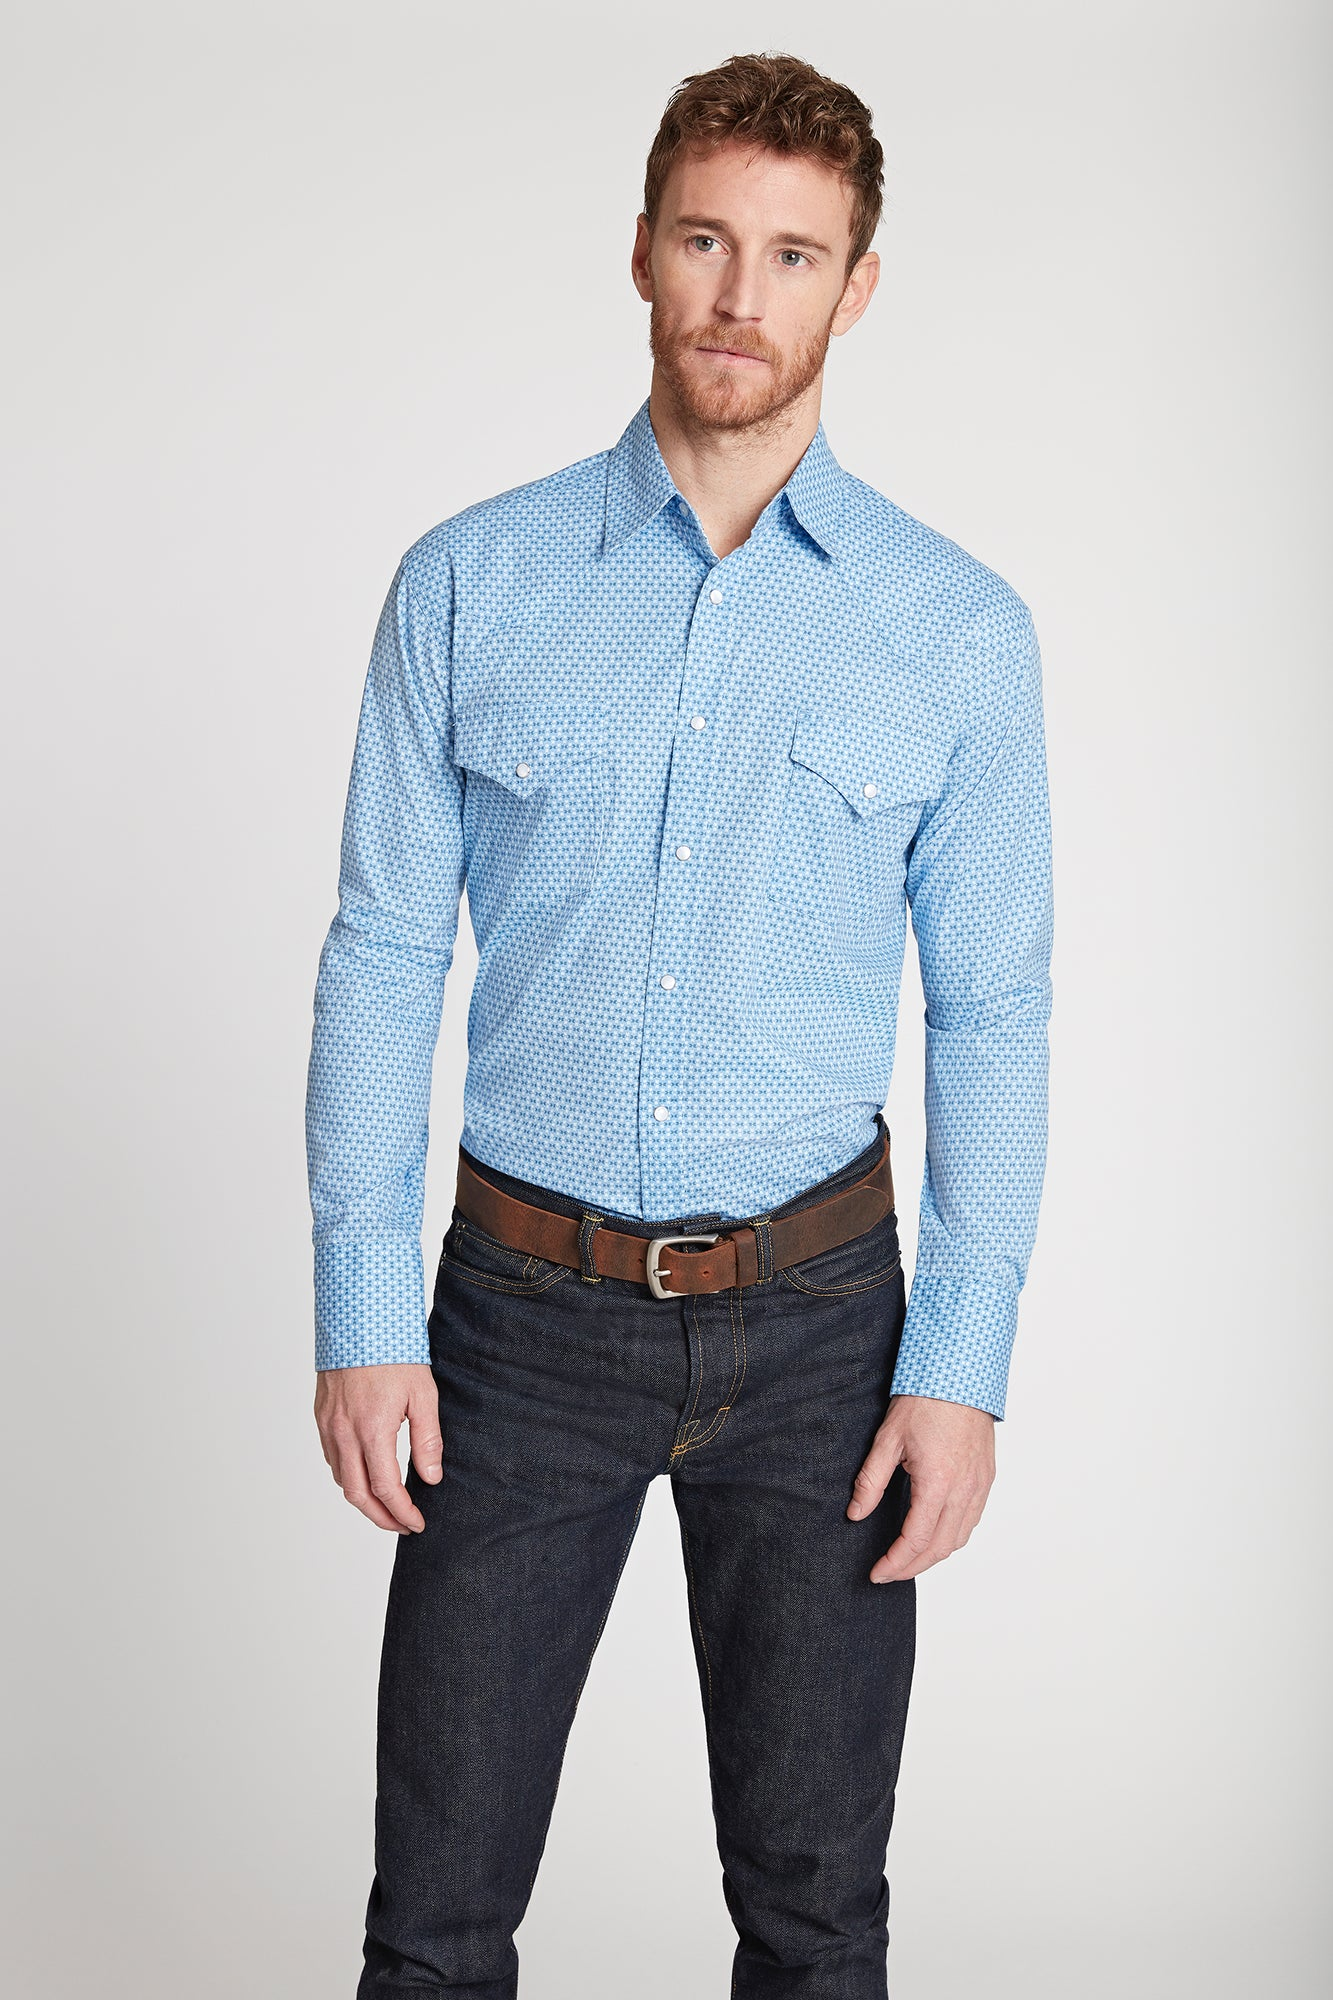 Men's Black Label Premium Cotton Poplin Western Shirt | Ely Cattleman